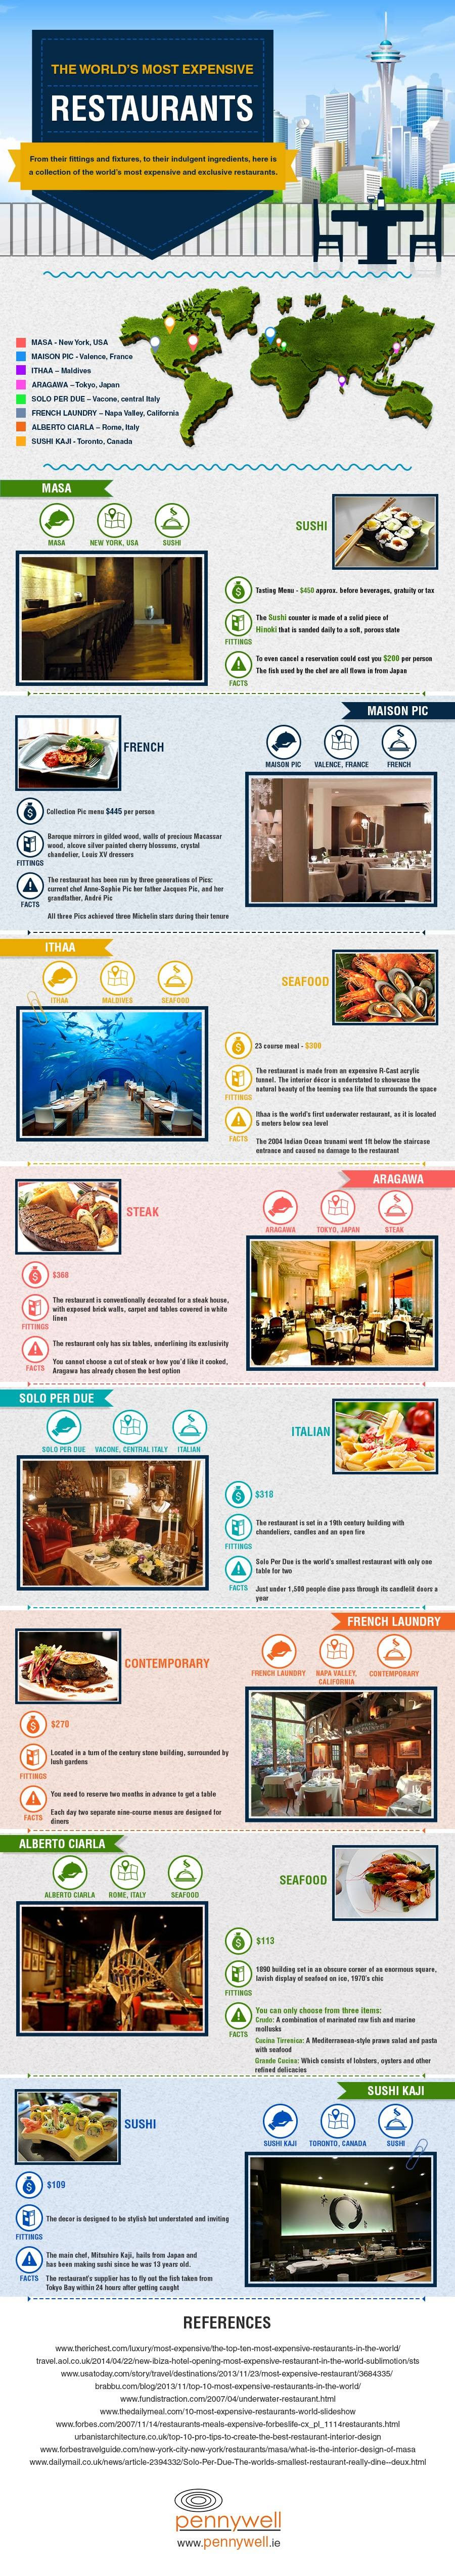 Infographic: The World's Most Expensive Restaurants